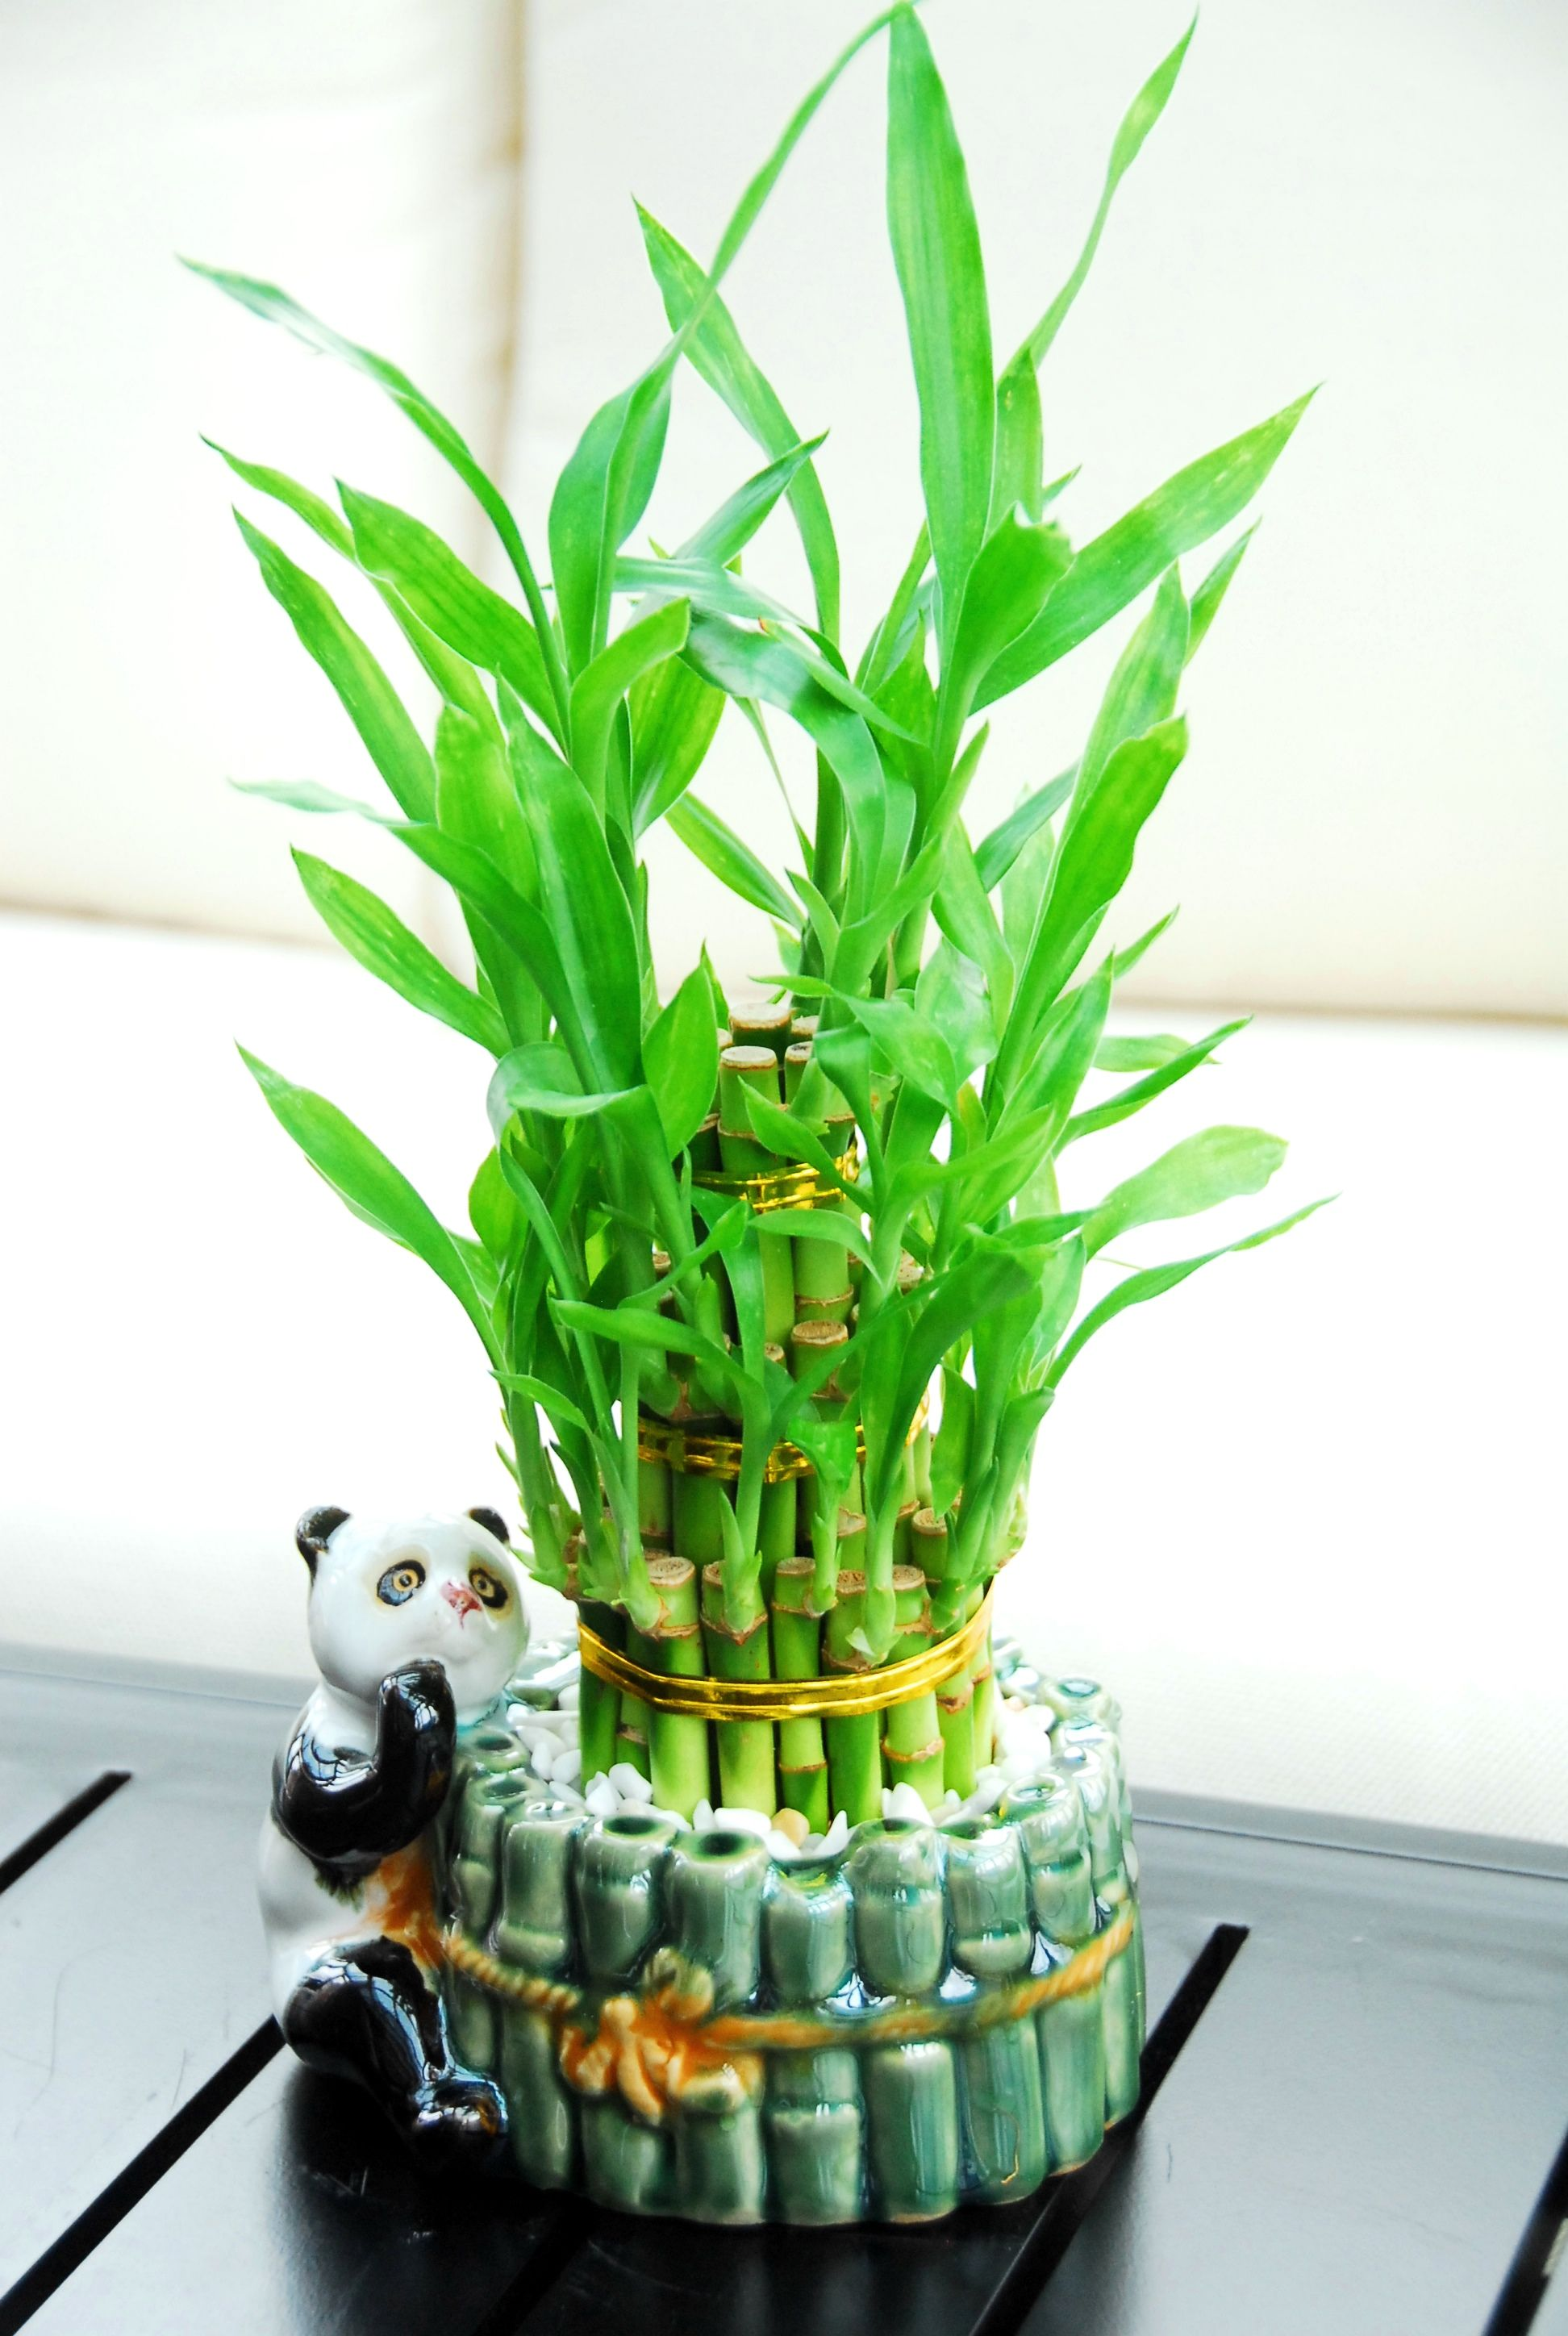 What do the colors of ribbon symbolize on lucky bamboo ehow - 3 Tiered Small Lucky Bamboo Arrangement 29 99 Featured In A Cute